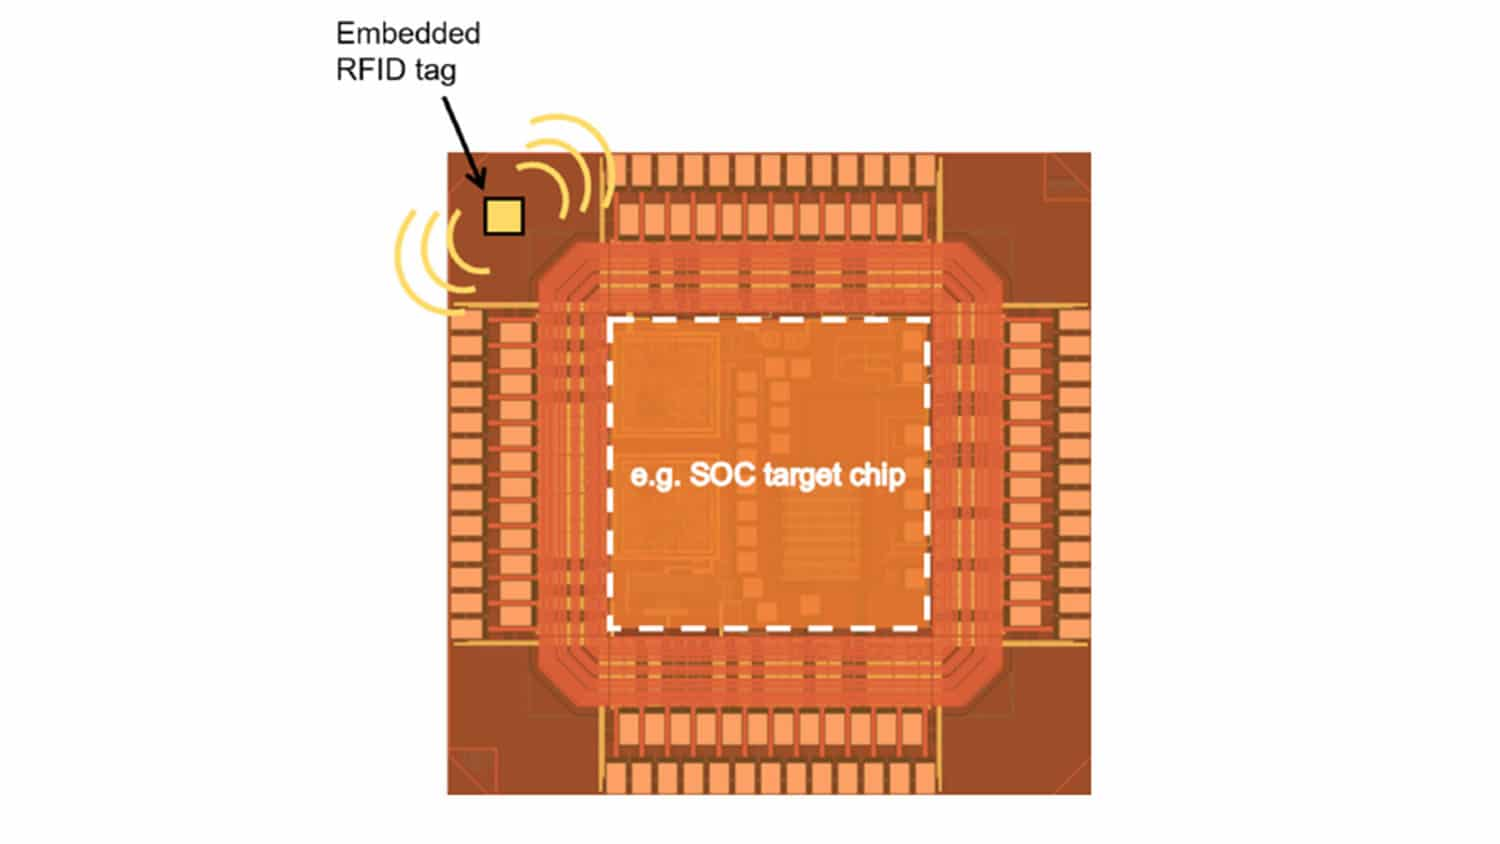 diagram of computer chip with small RFID tag embedded in corner